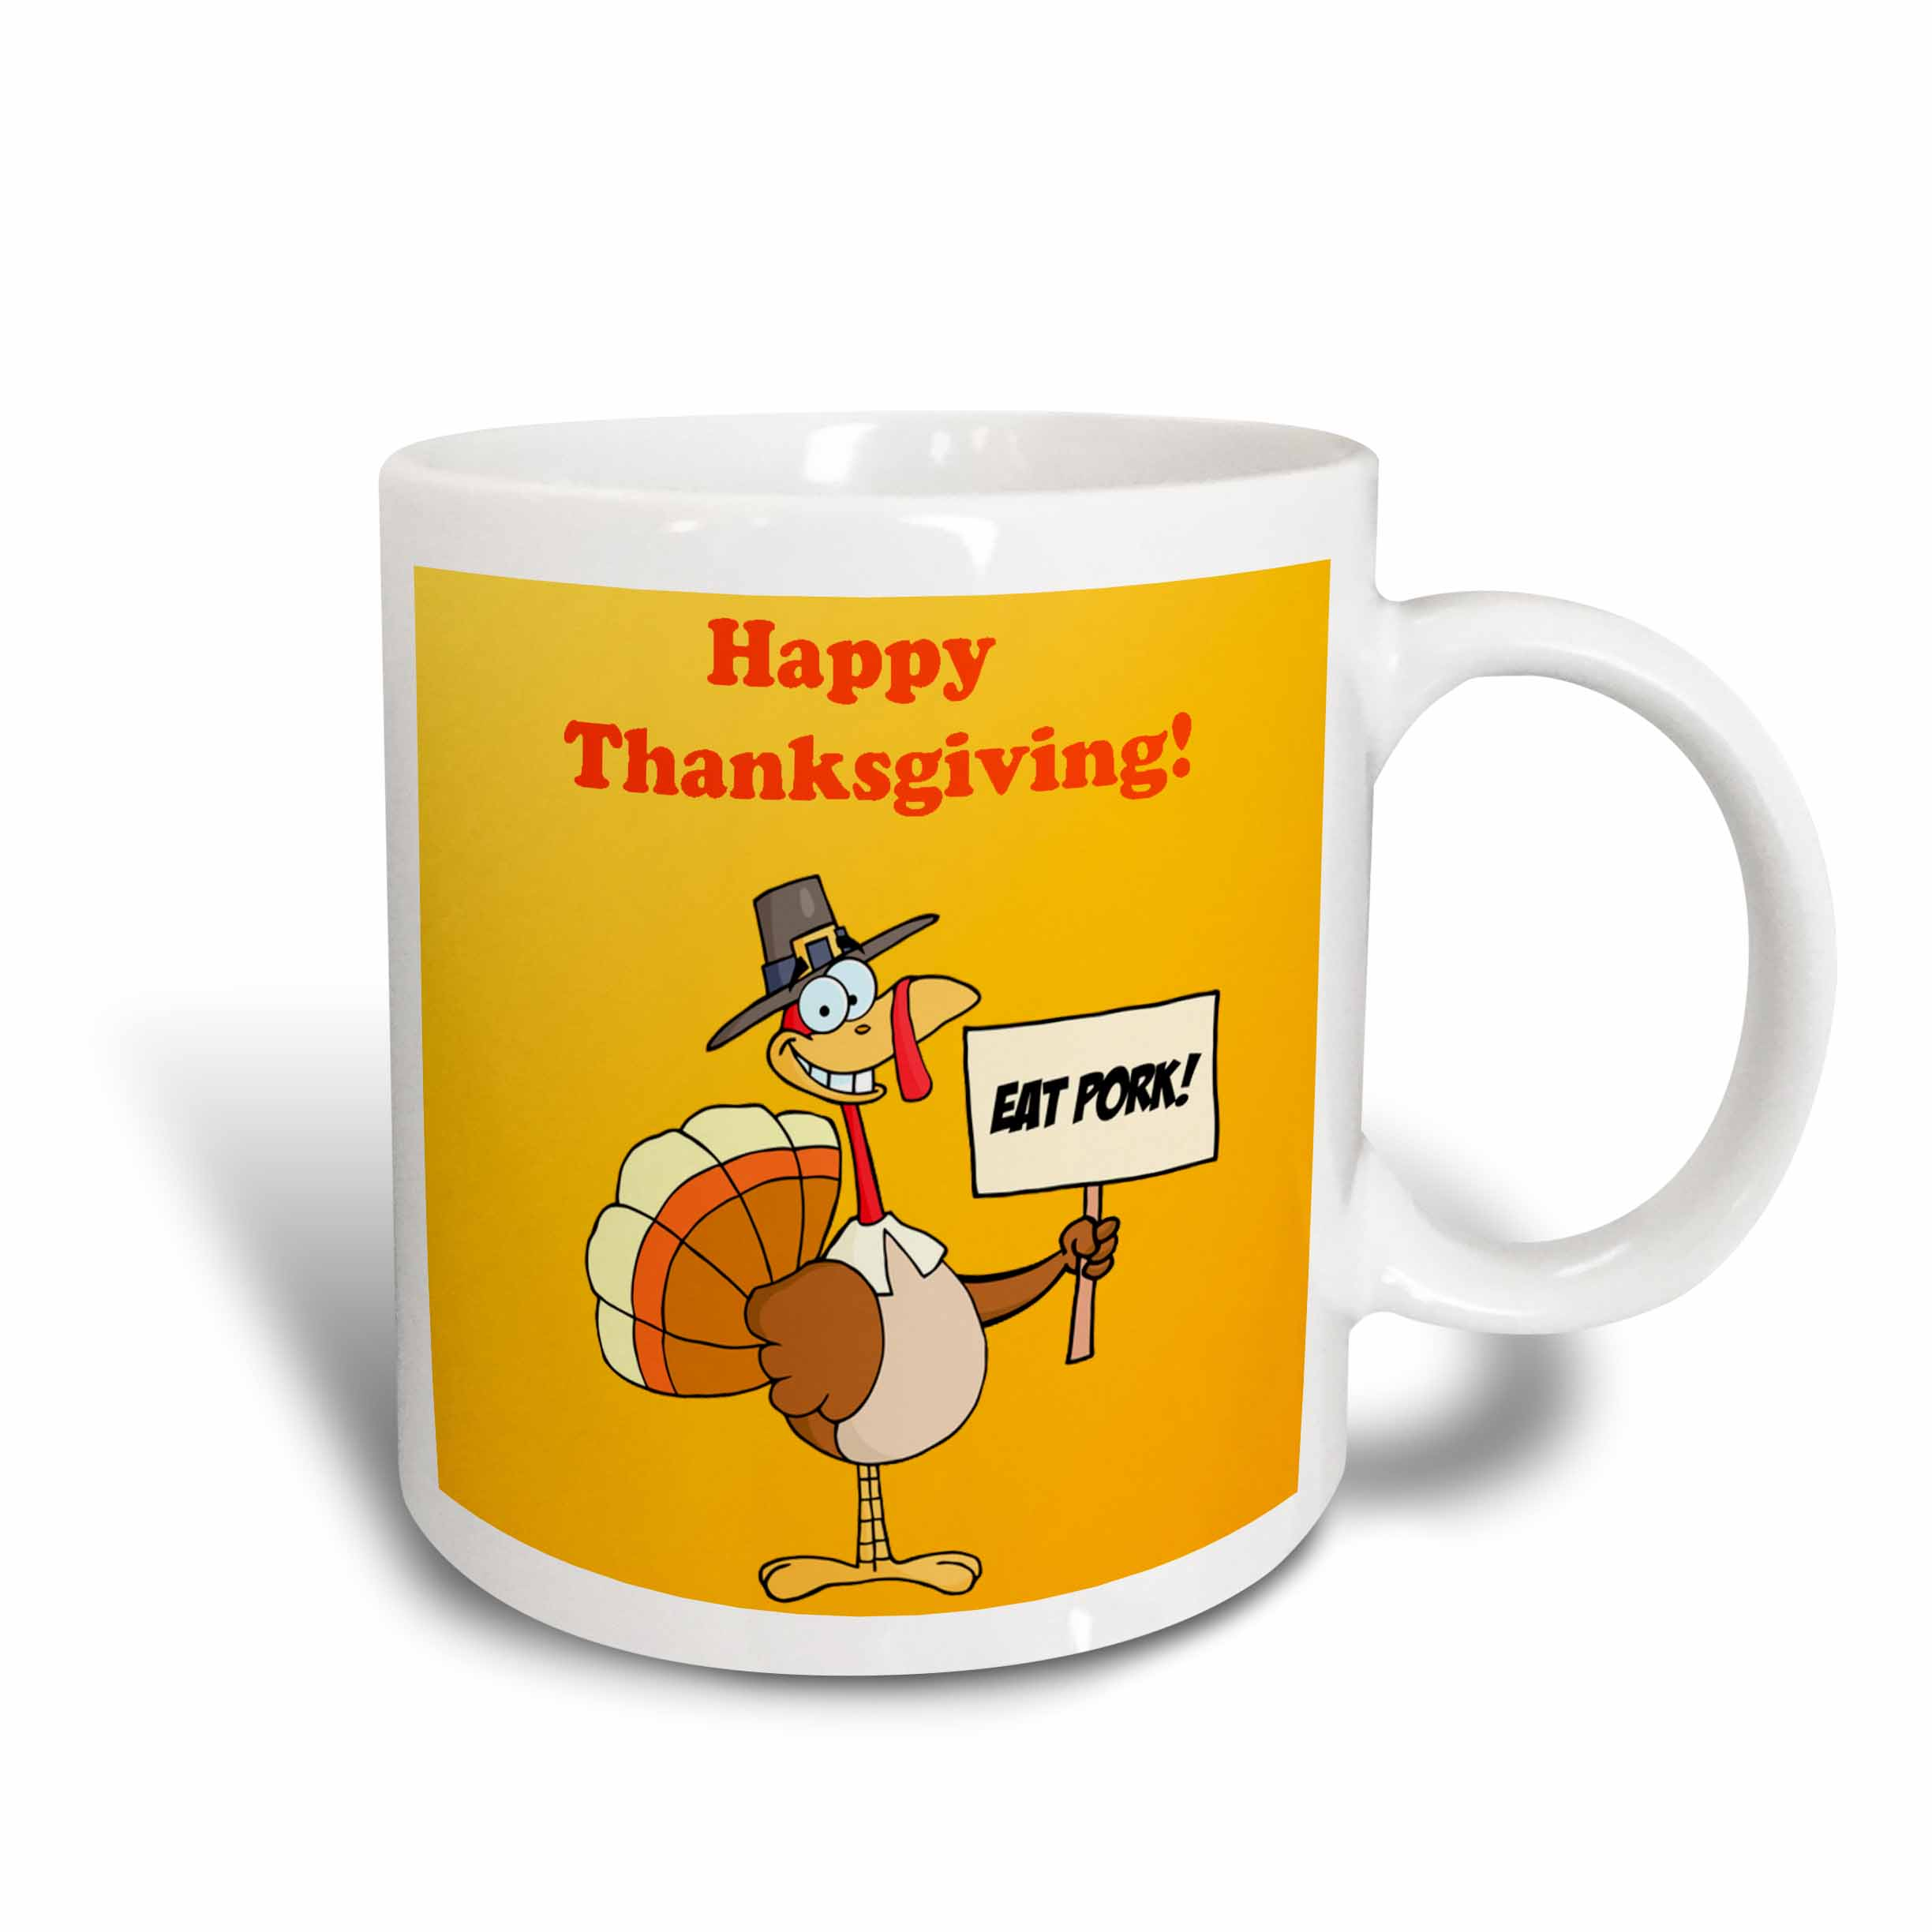 3dRose Happy Thanksgiving Turkey , Ceramic Mug, 15-ounce